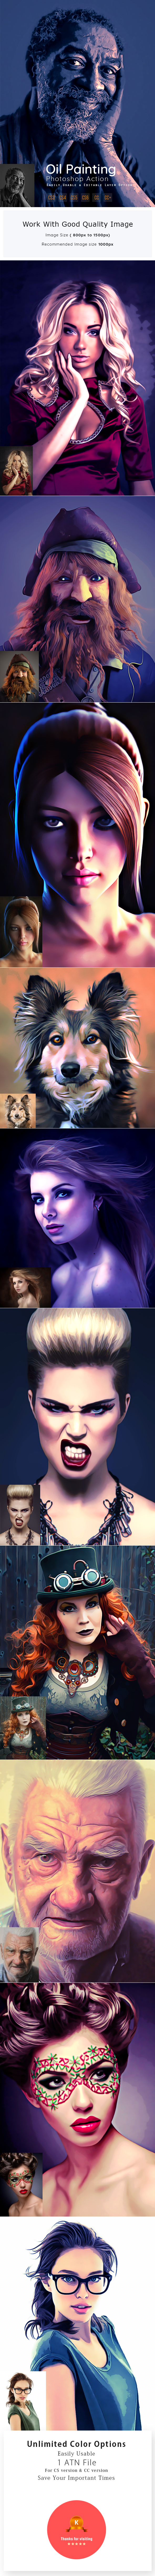 GraphicRiver Oil Painting Action 21149995